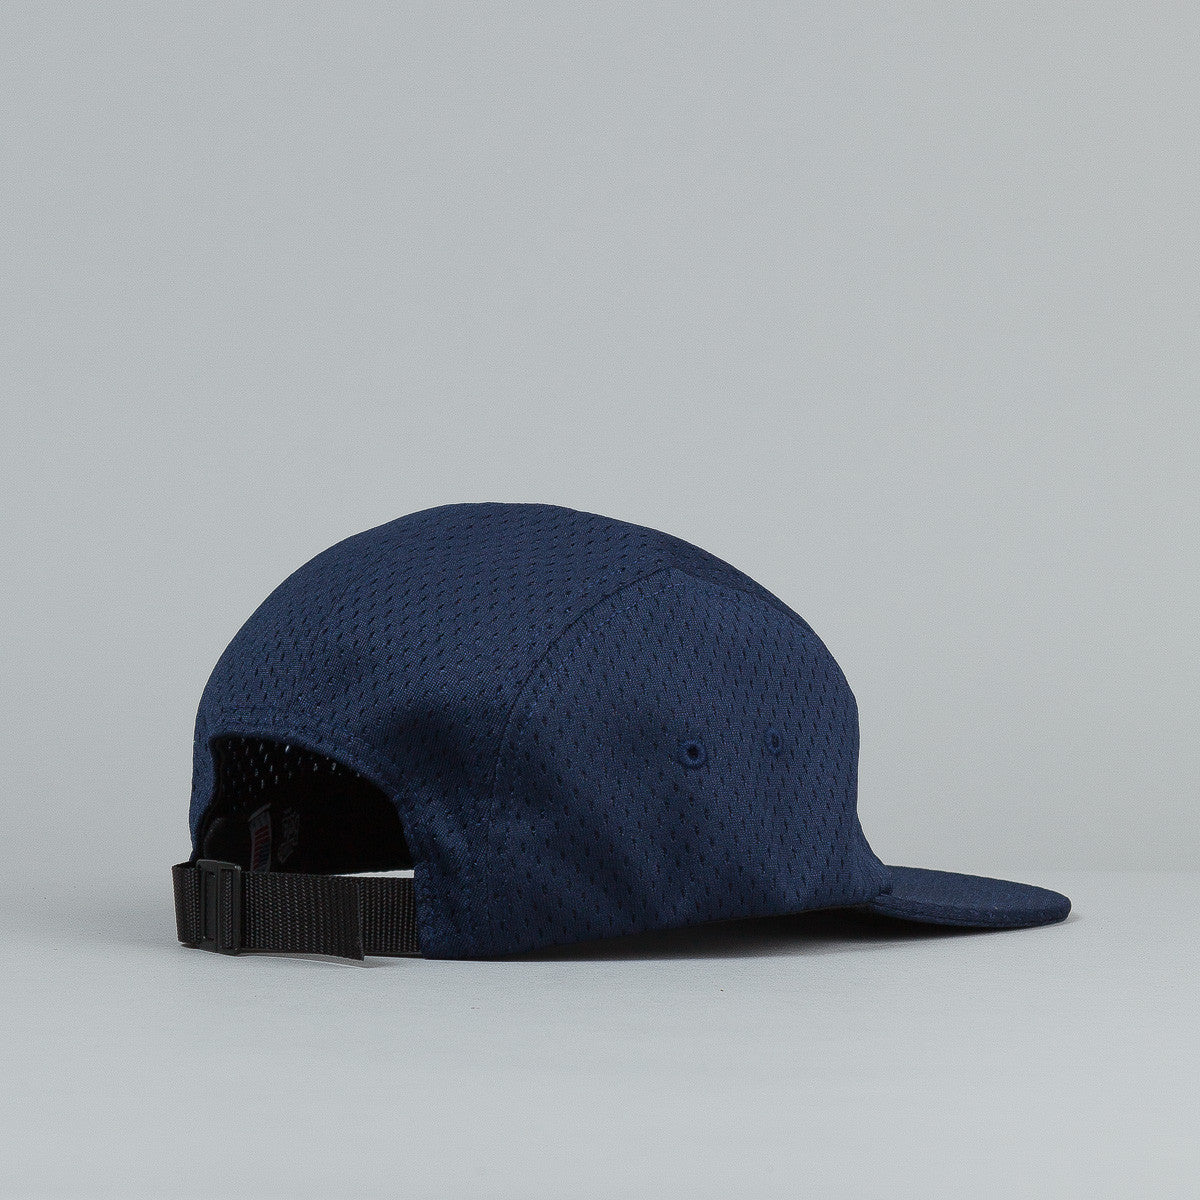 Belief Triboro 4 Panel Cap - Dark Navy